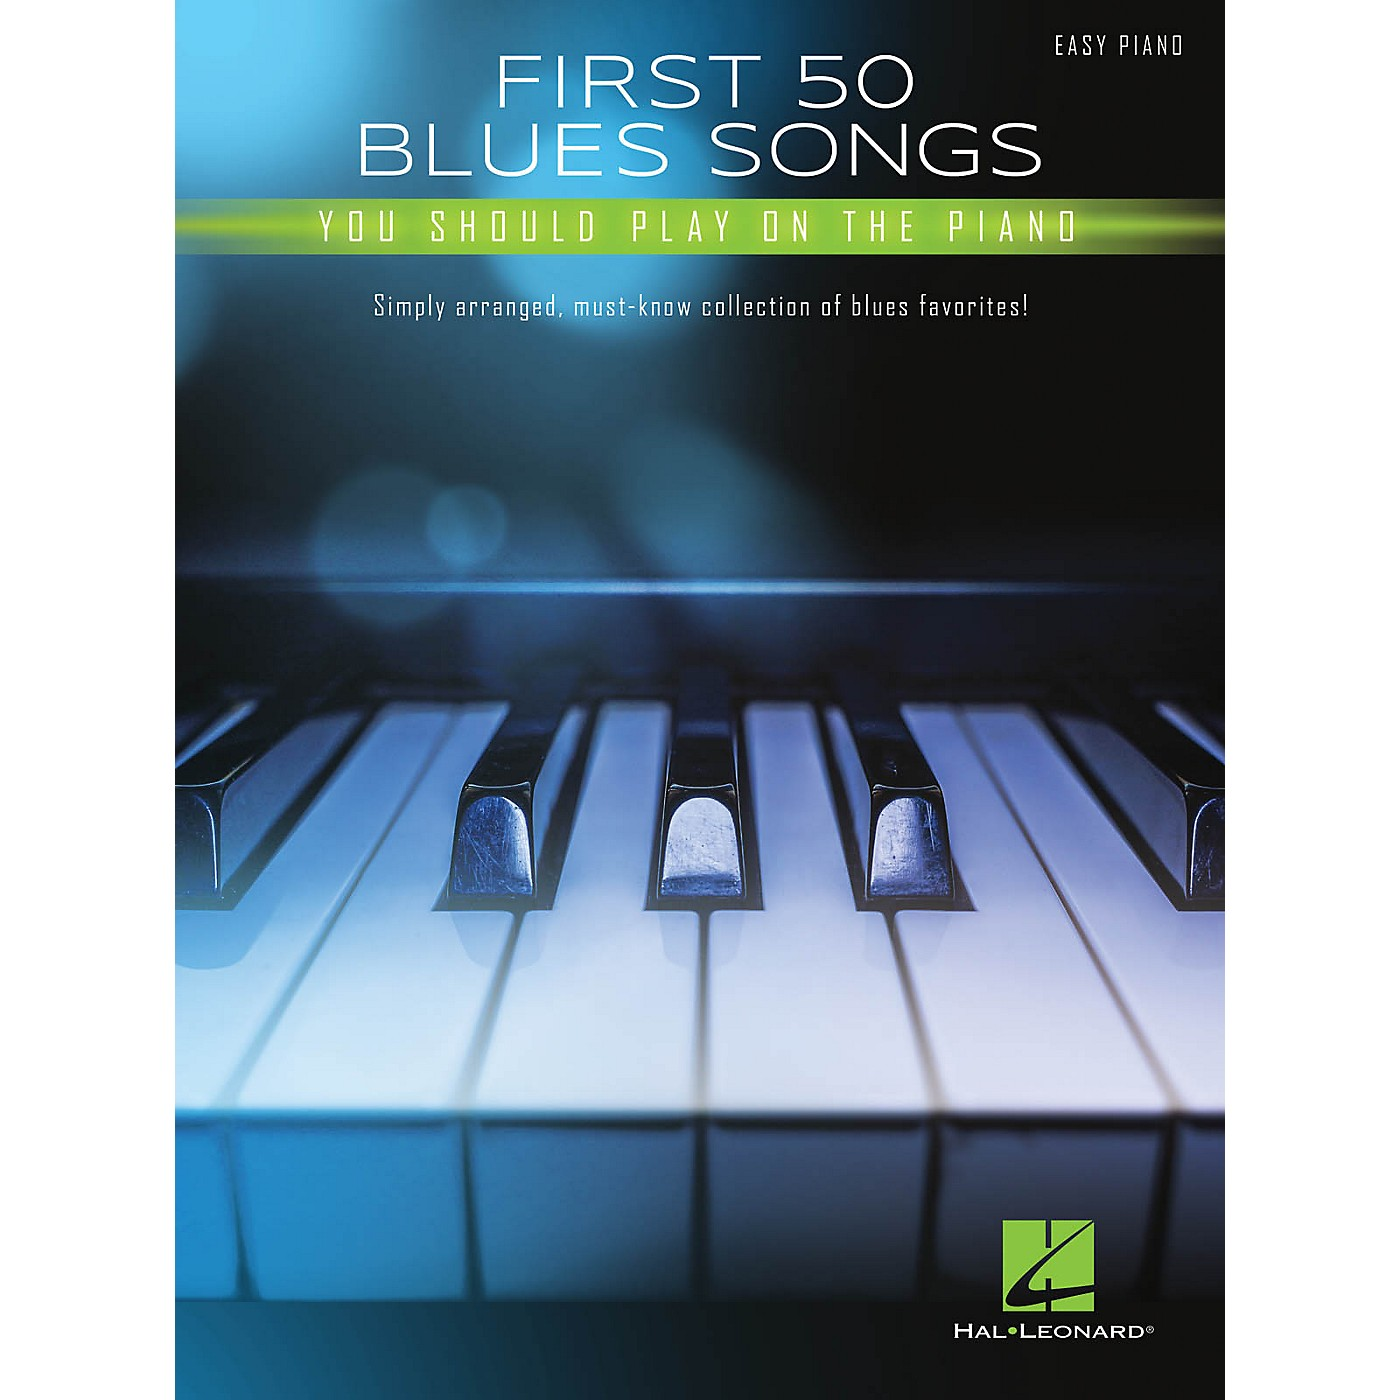 Hal Leonard First 50 Blues Songs You Should Play on the Piano Easy Piano Songbook thumbnail